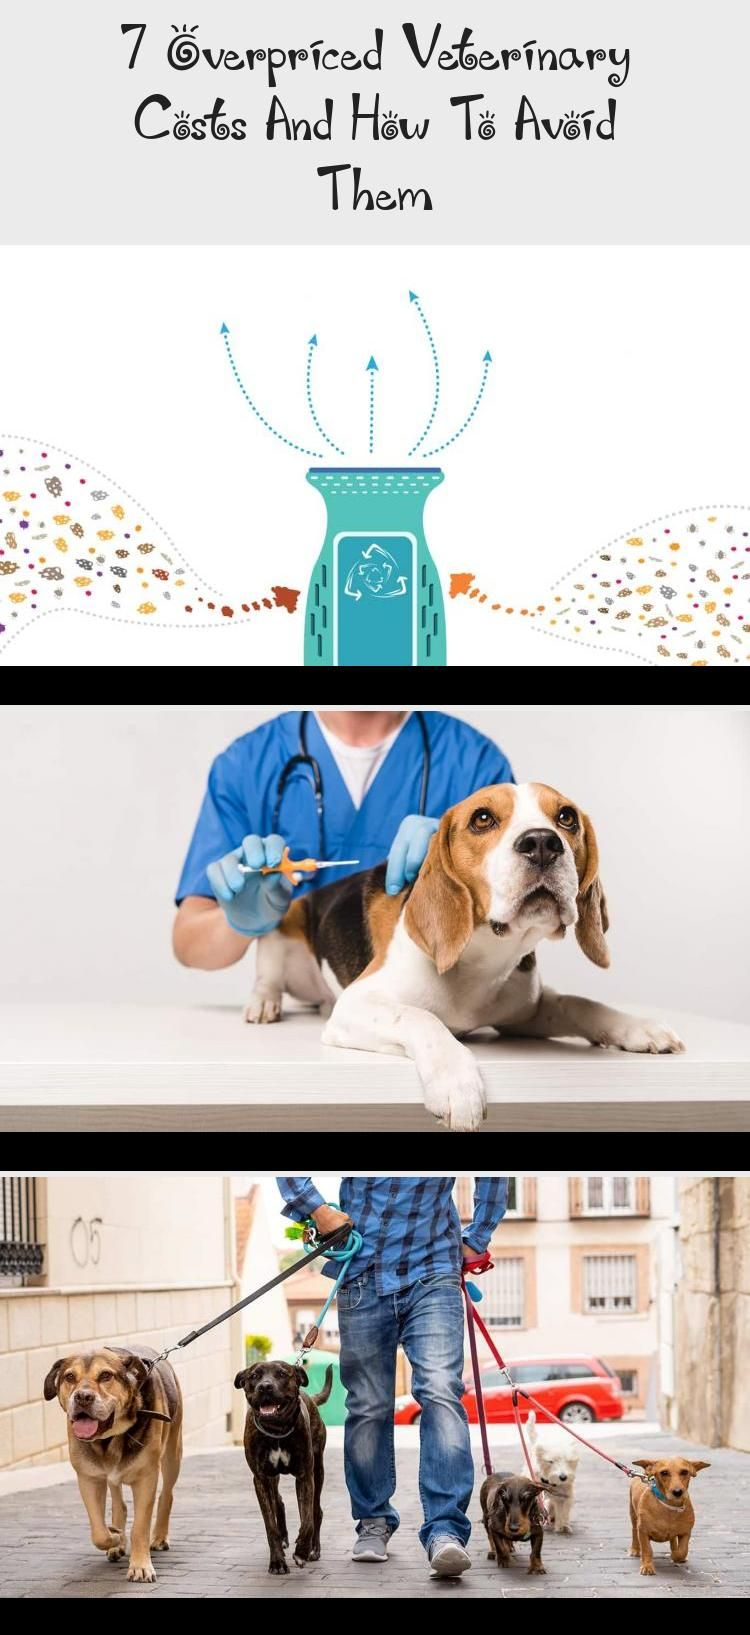 7 Overpriced Veterinary Costs And How To Avoid Them in